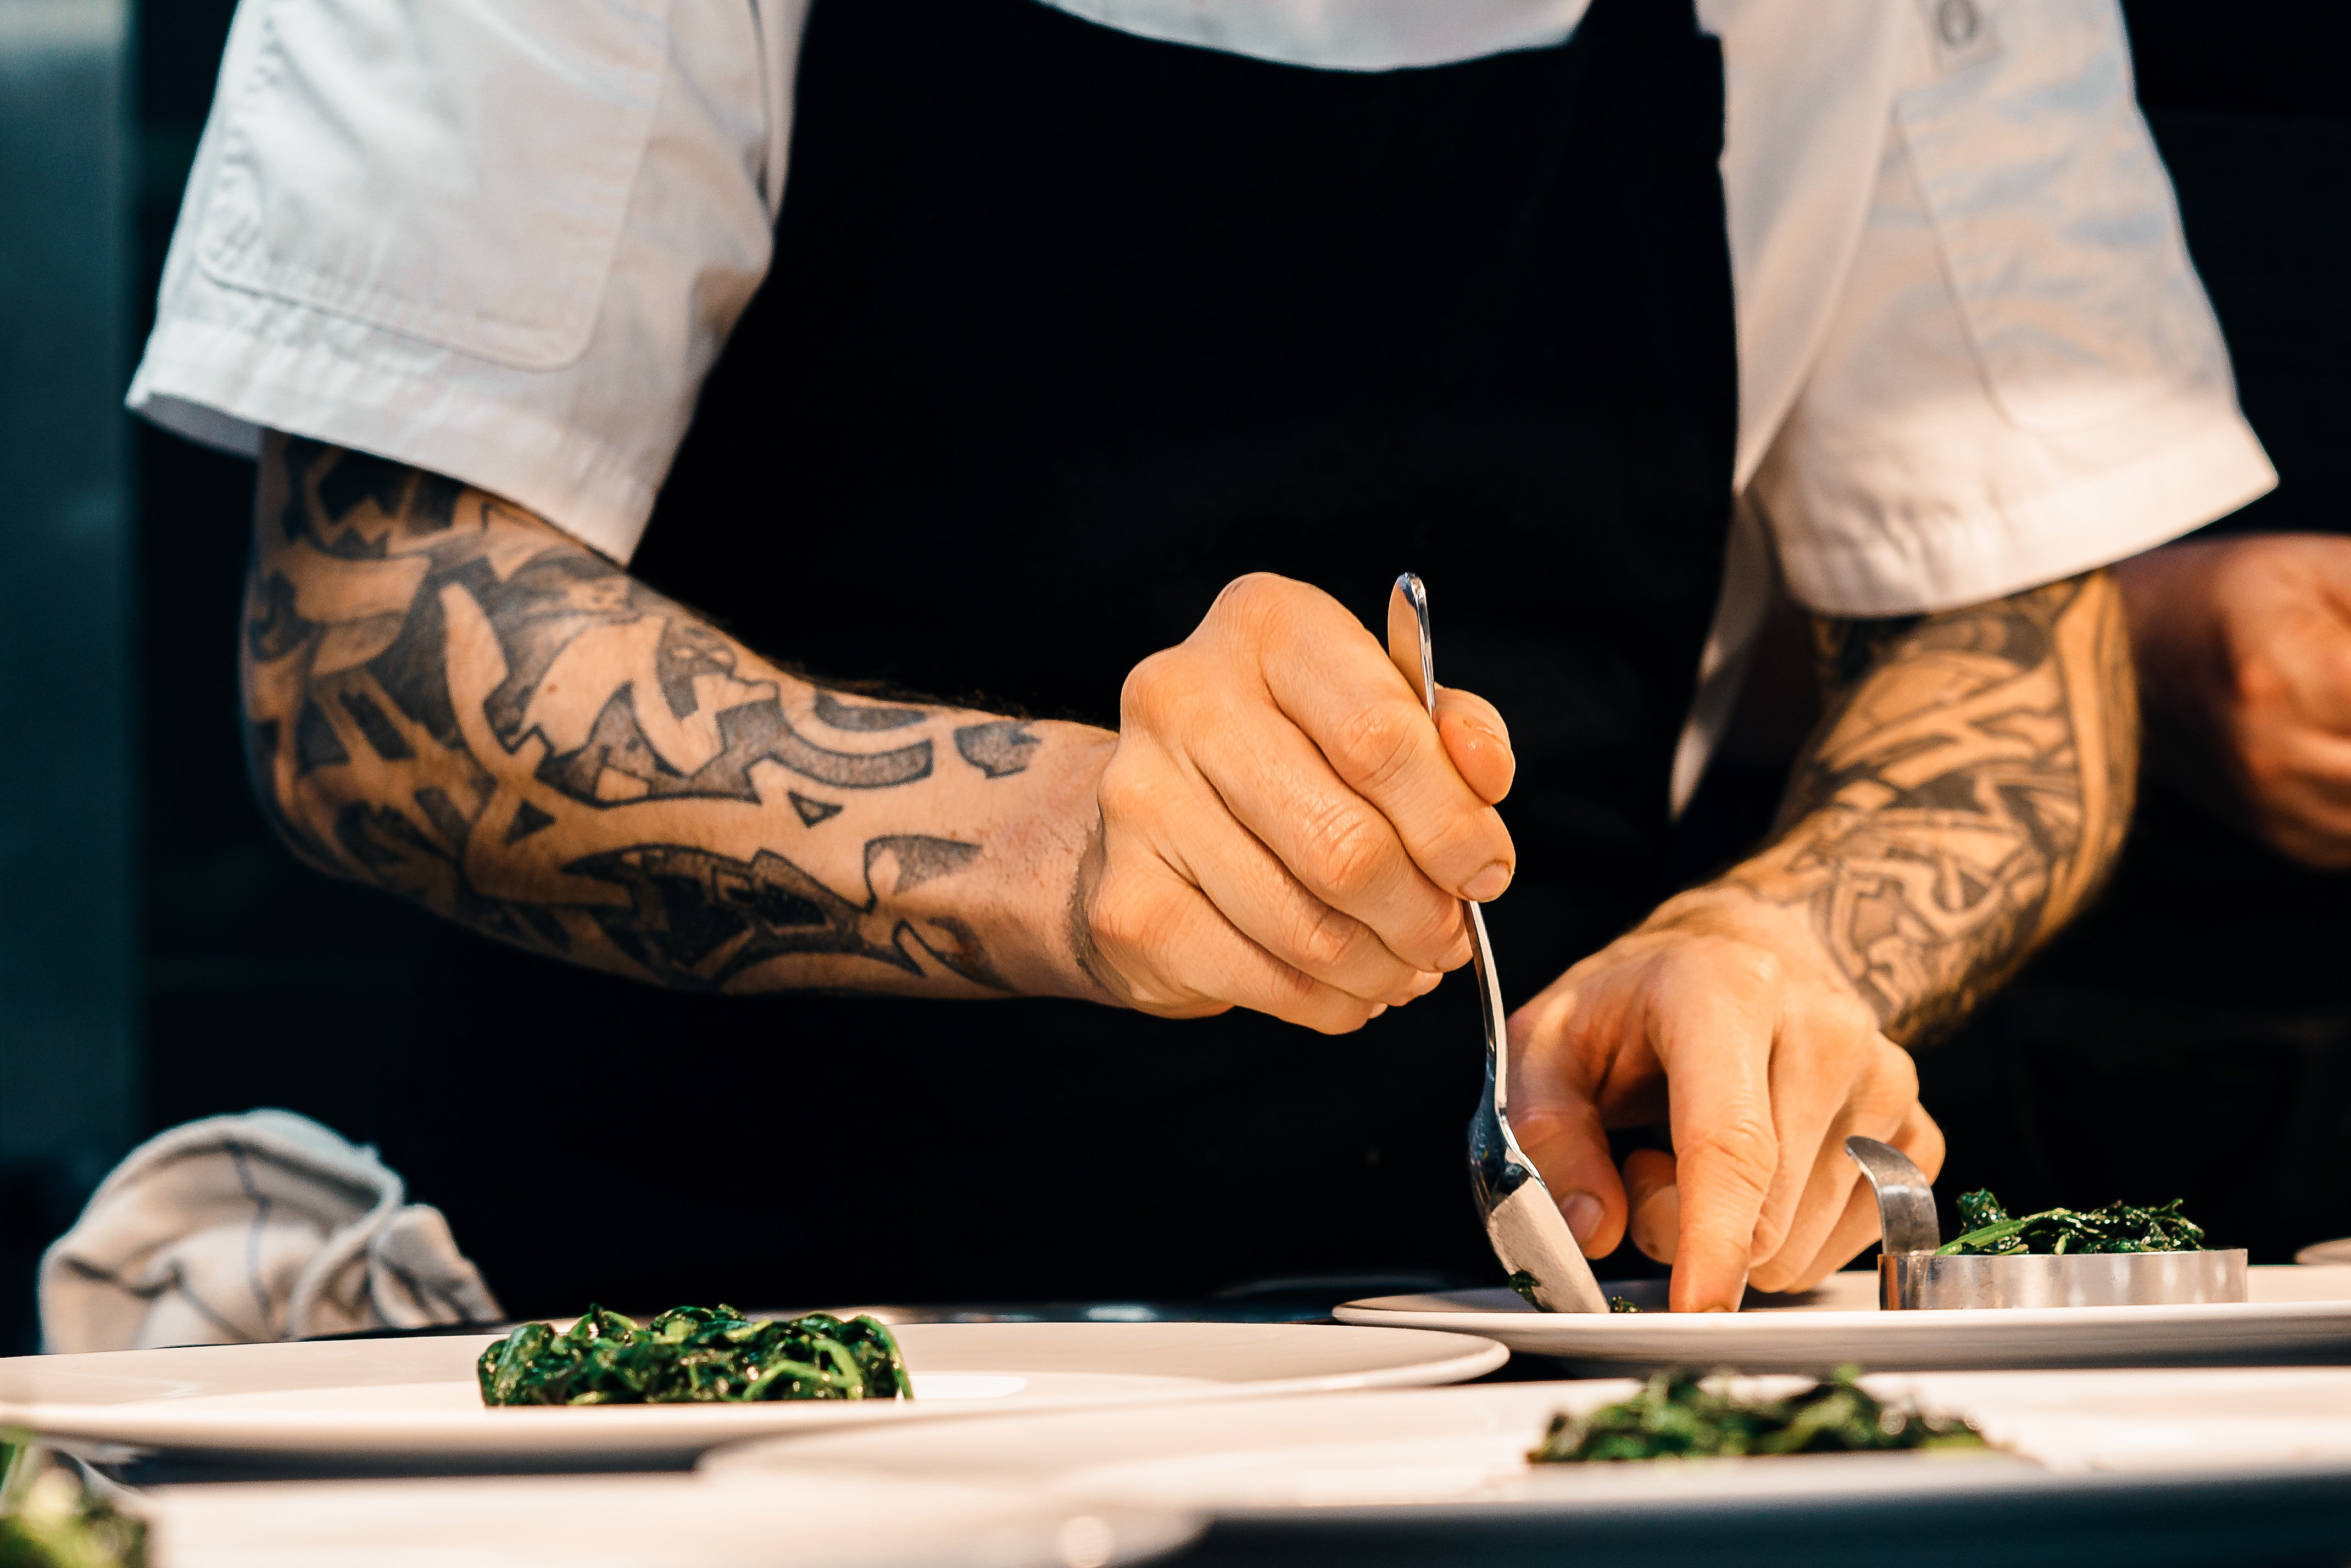 A chef prepares a meal at a restaurant